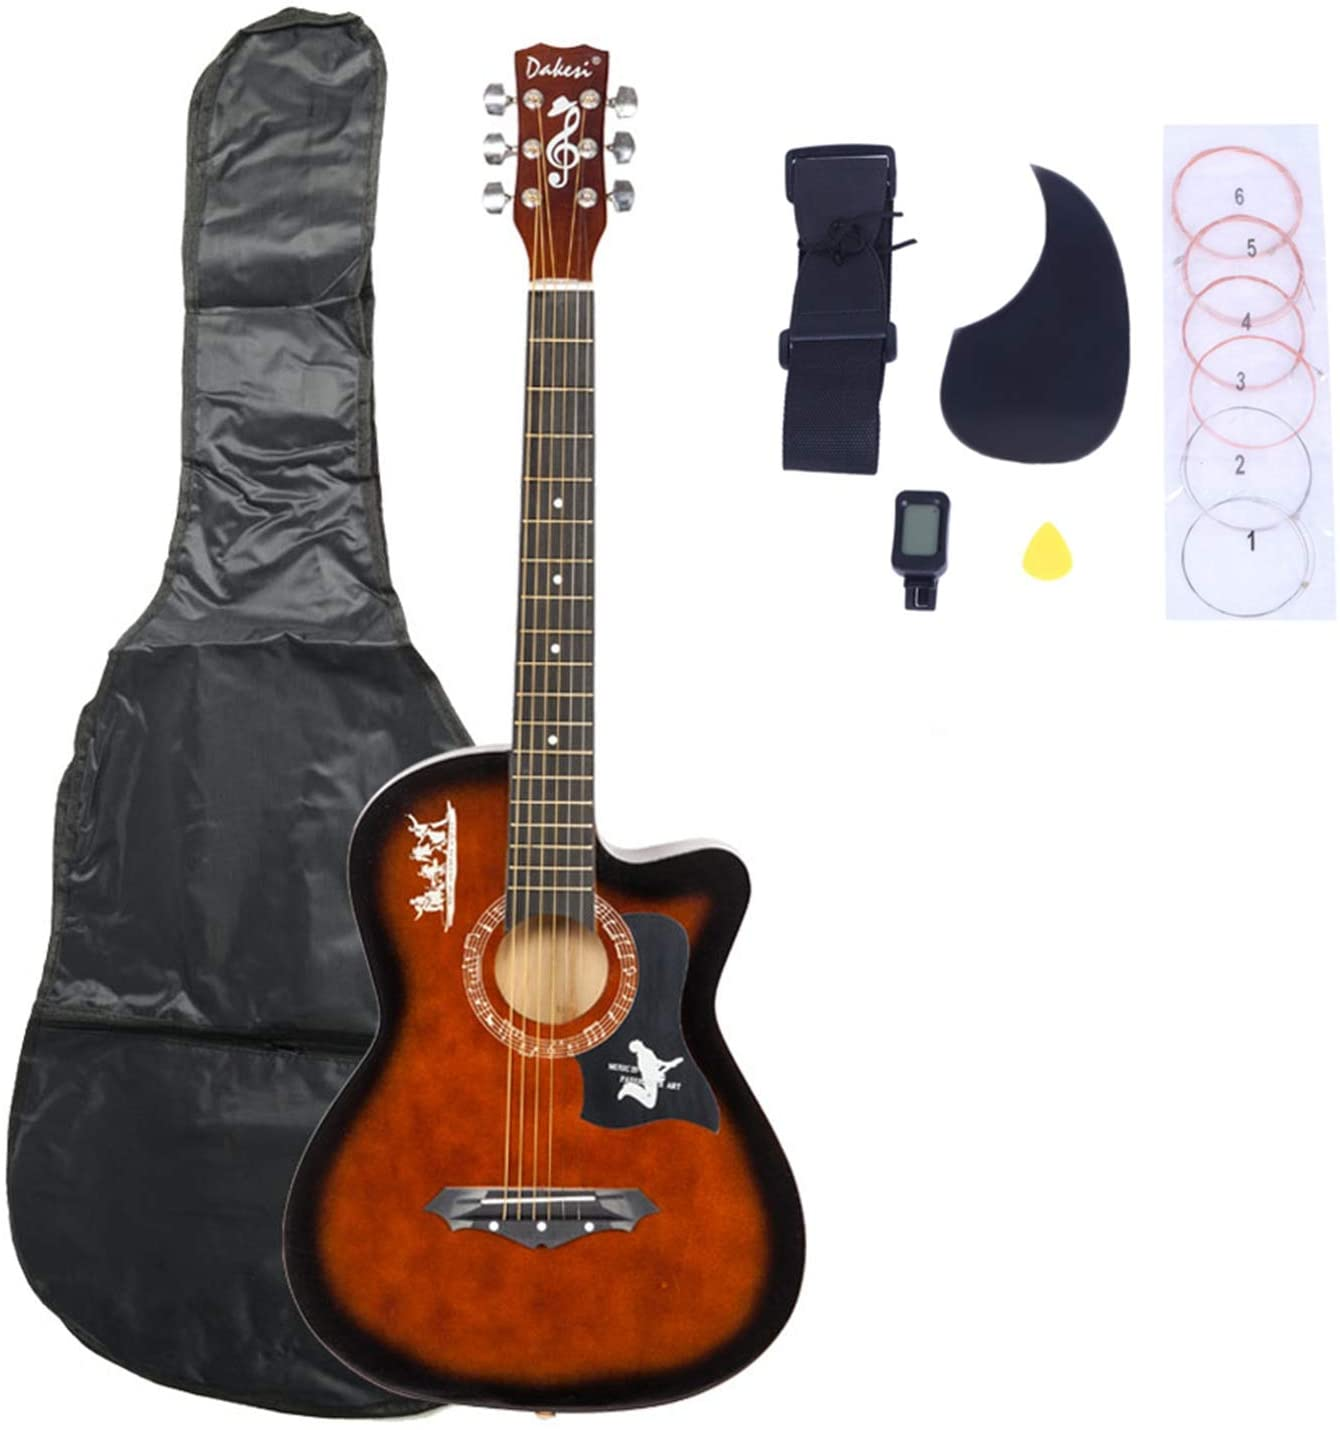 DK-38C Basswood Guitar Bag, Straps, Picks, LCD Tuner, Pickguard, String Set Coffee - Affordable & Professional Student Guitar for Beginner Starter